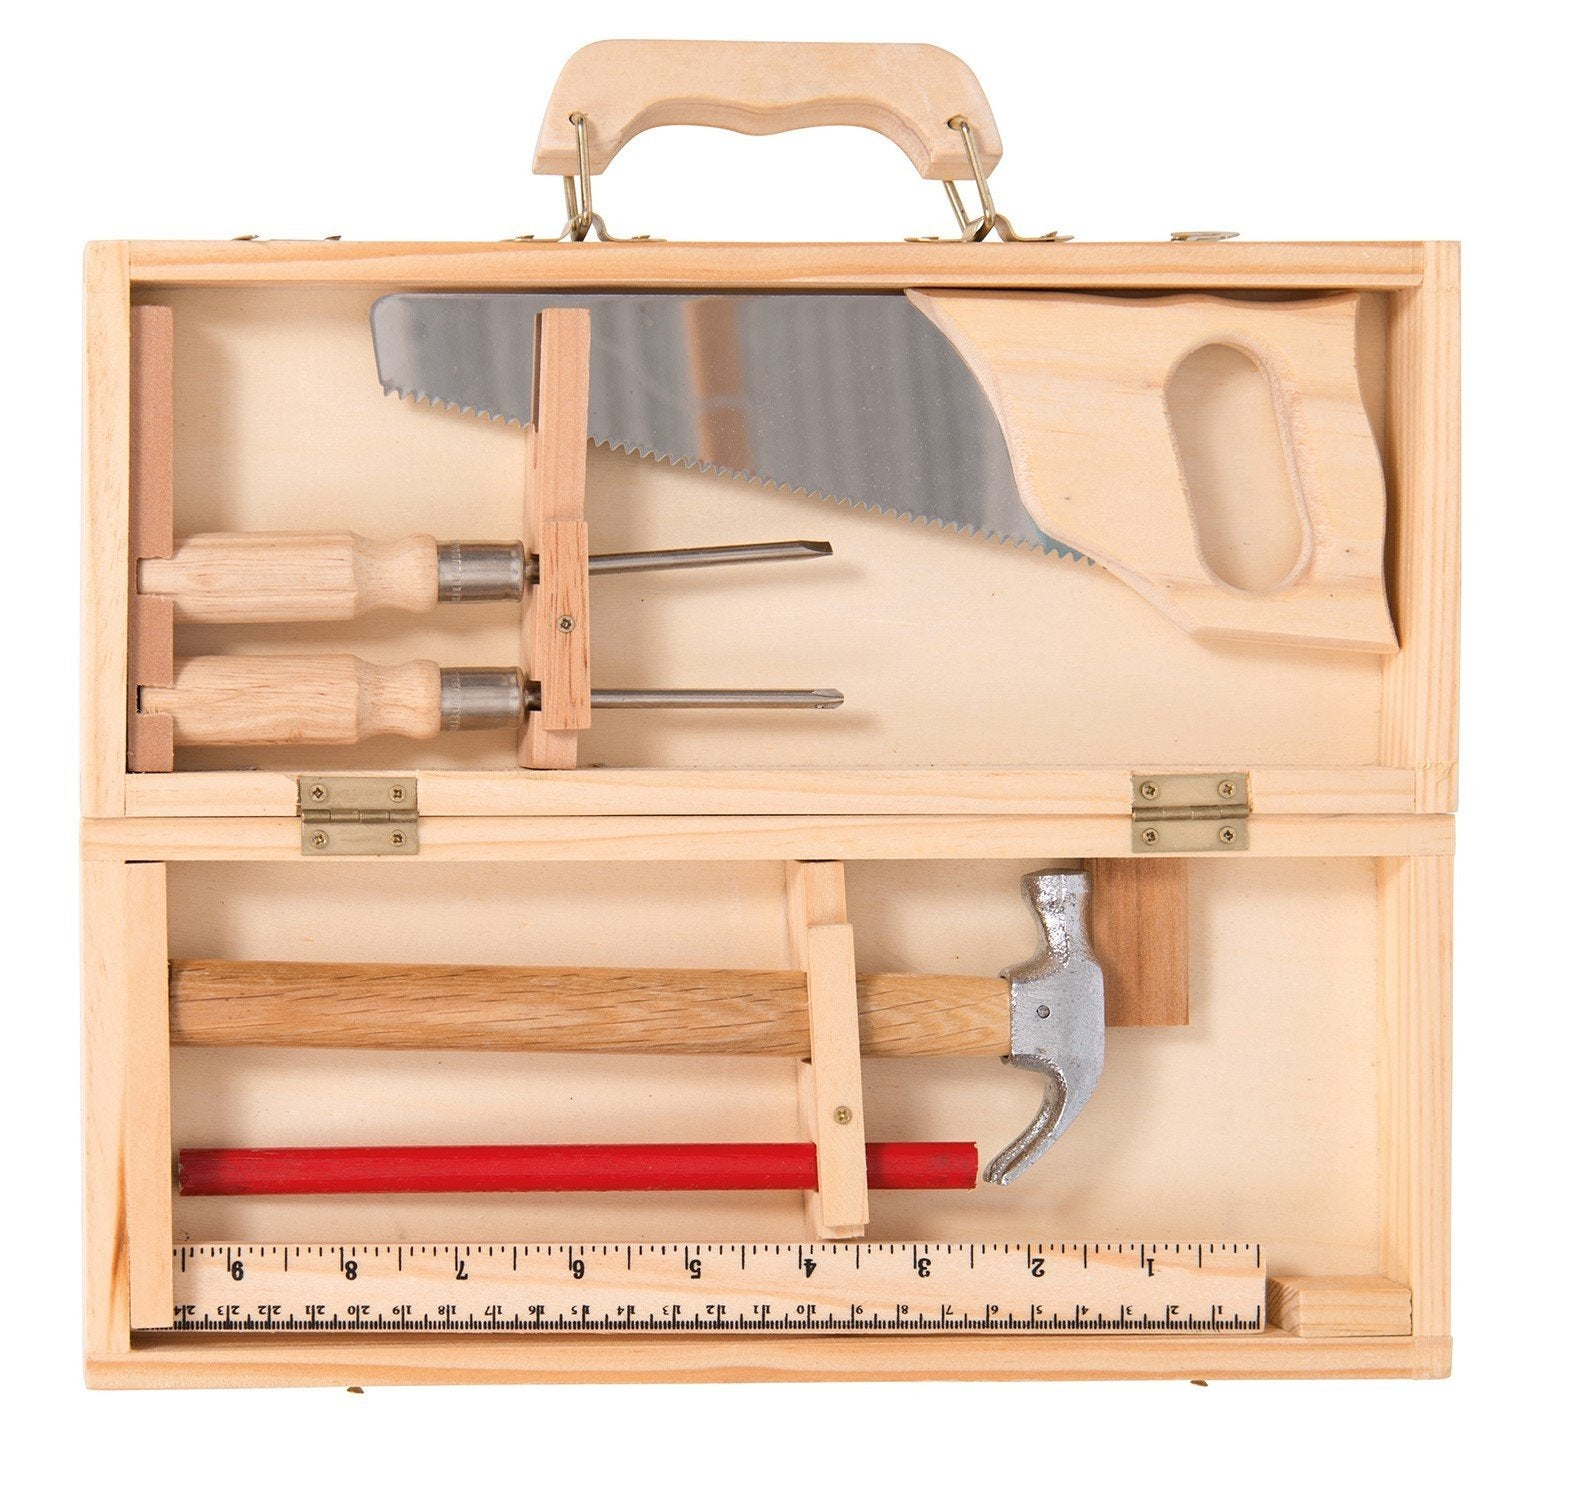 Moulin Roty Small Wooden Tool Box Set